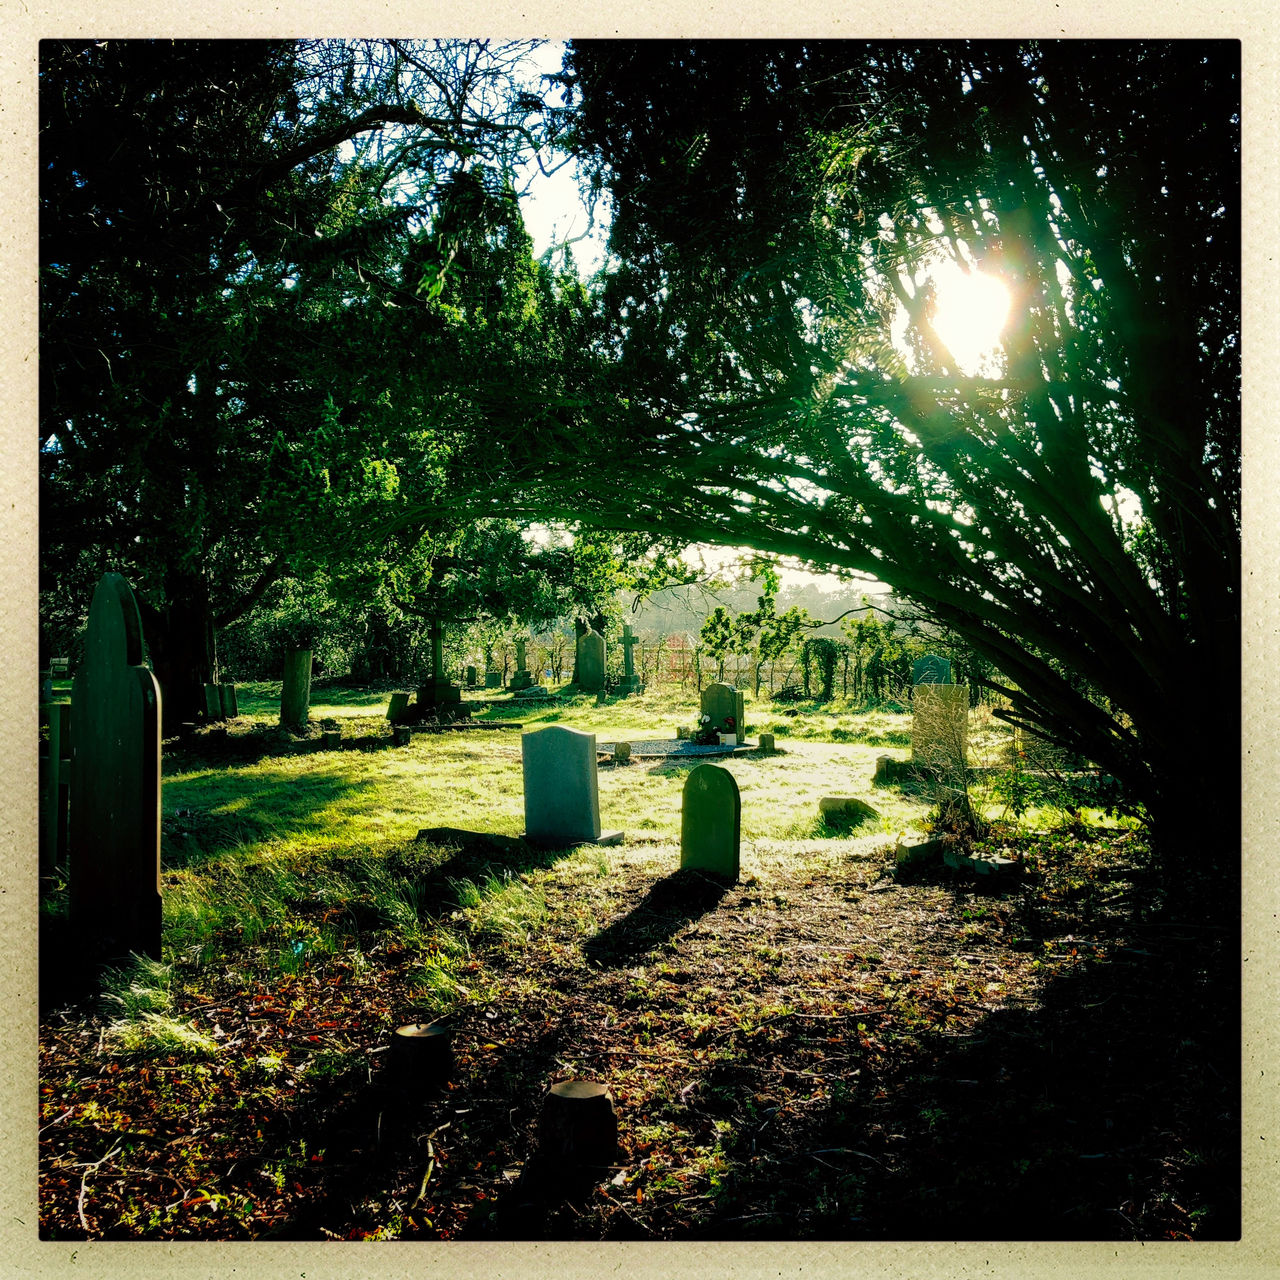 cemetery, tombstone, tree, gravestone, memorial, grave, graveyard, no people, nature, outdoors, tranquility, day, grass